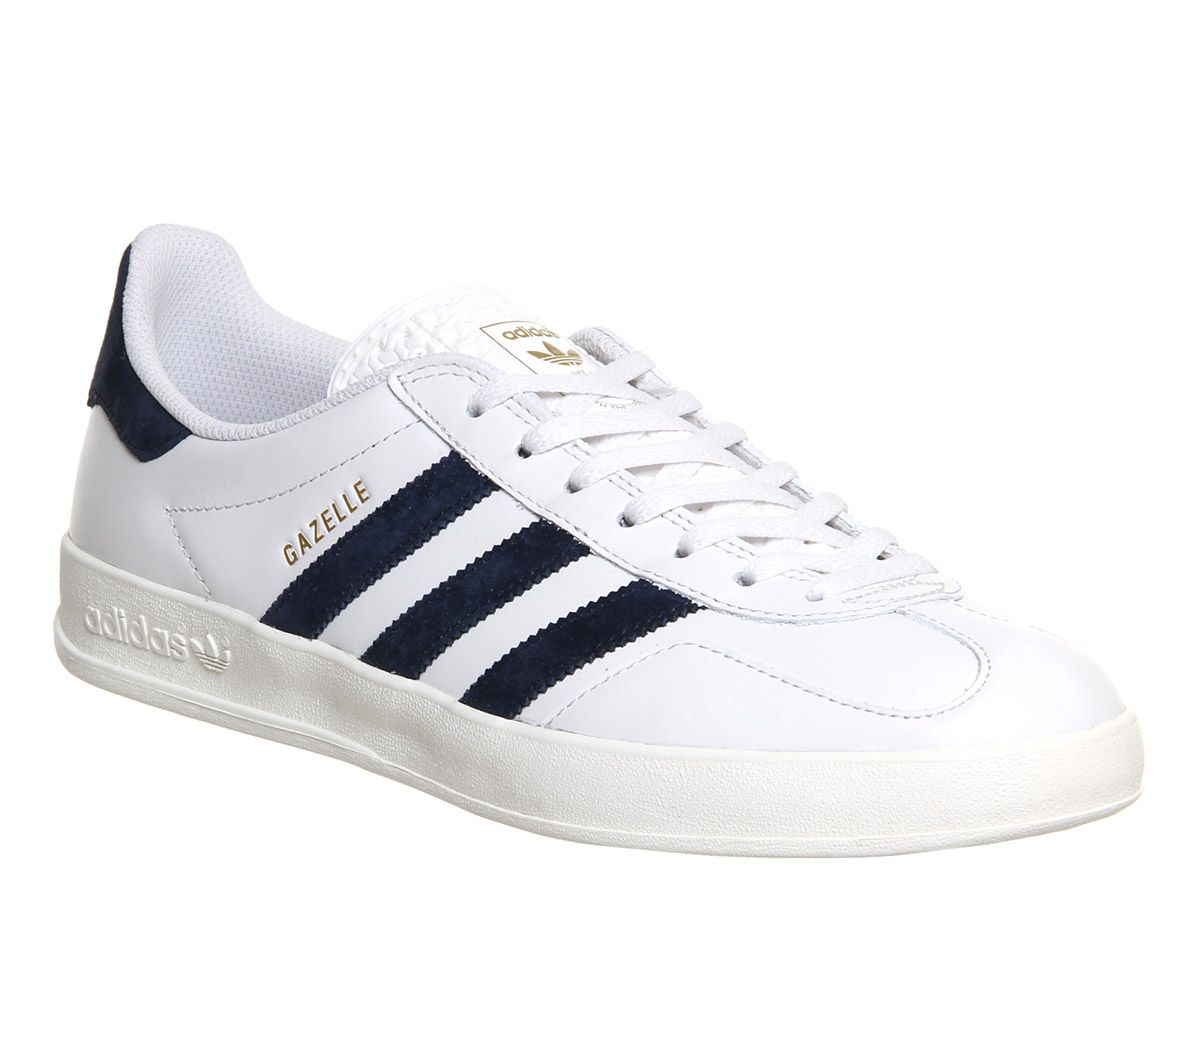 Adidas Gazelle Indoor Vintage White Leather Exclusive His